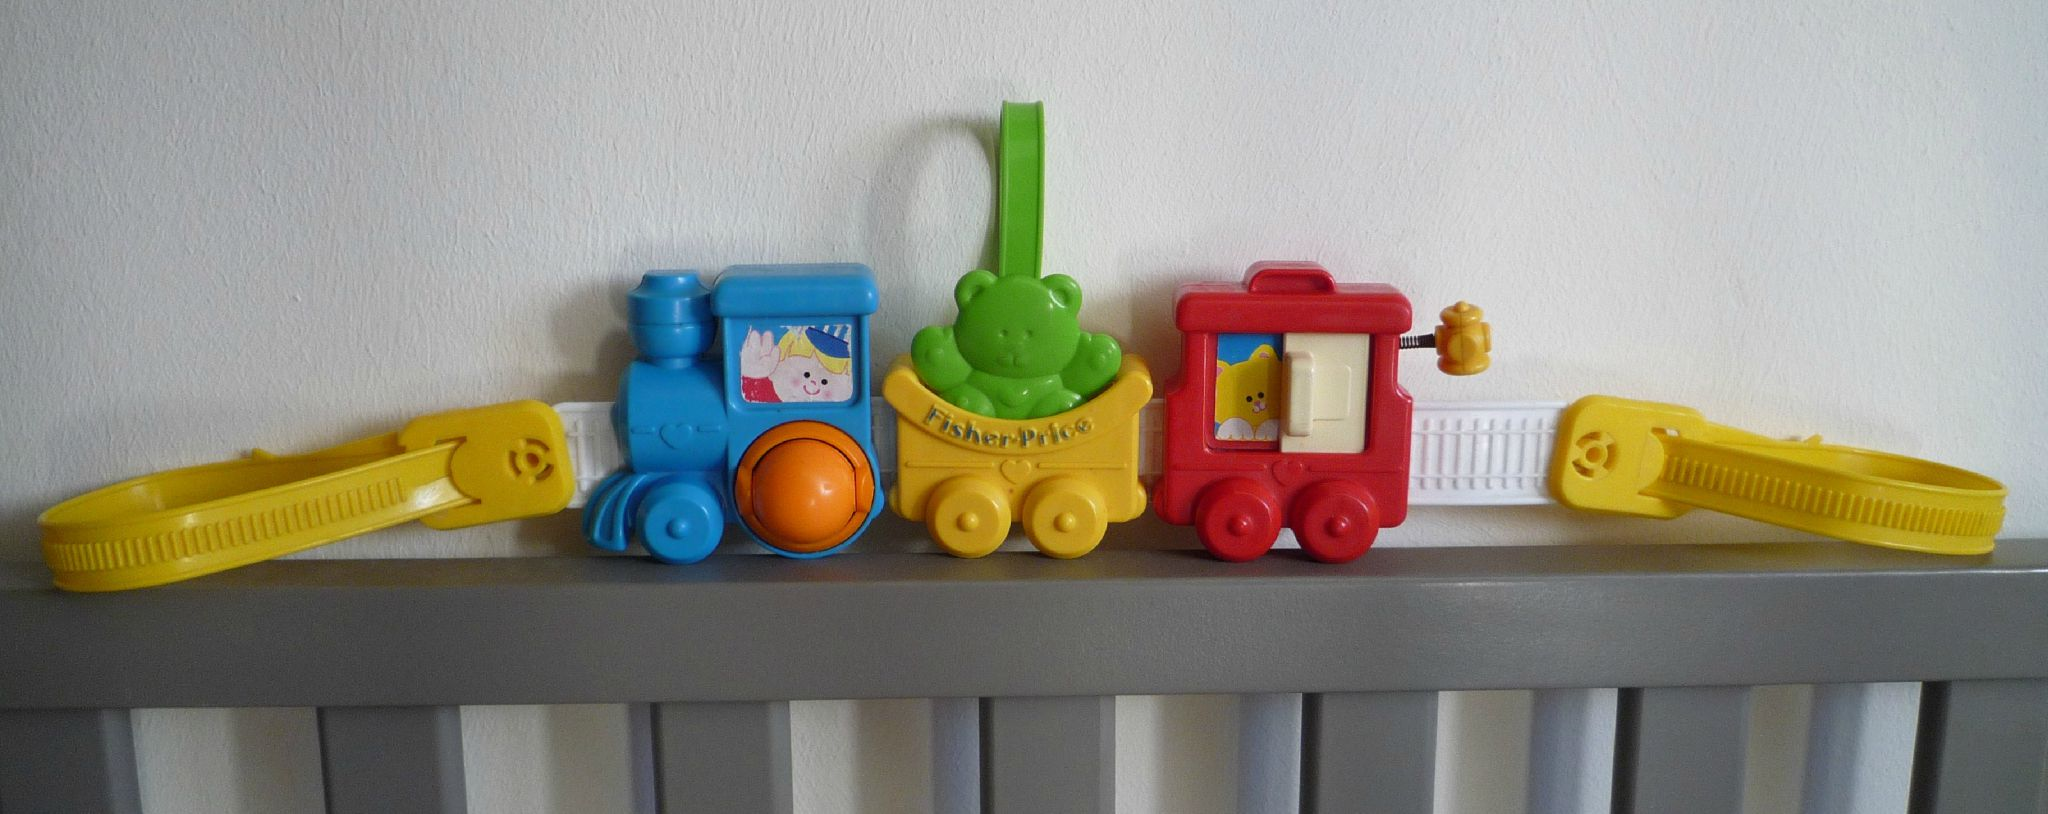 Guirlande poussette #1271 Fisher Price (3)